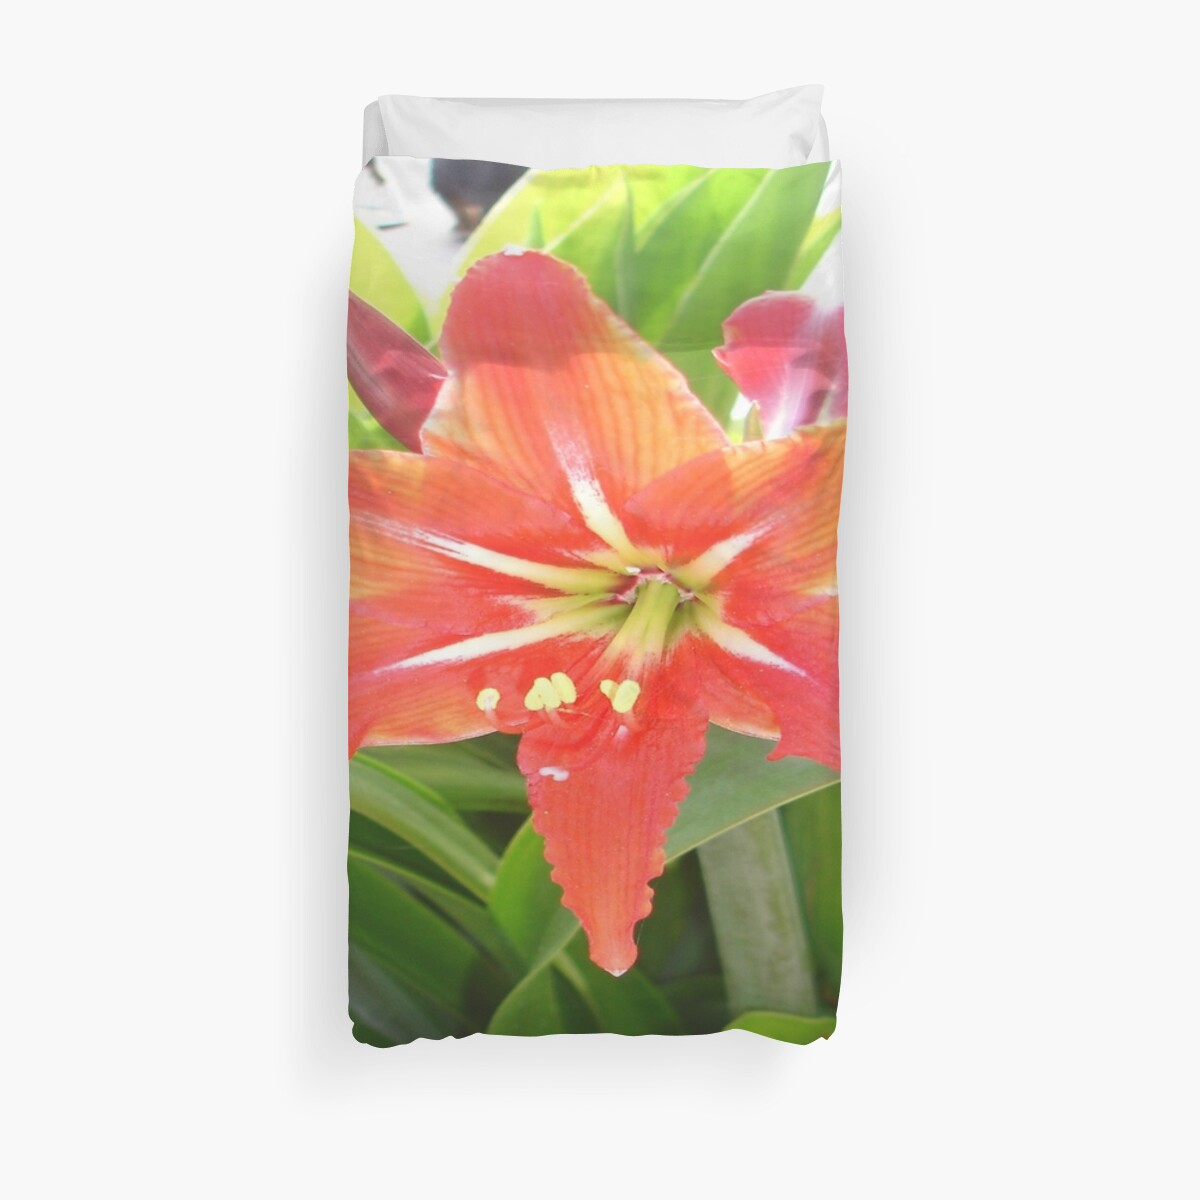 Orange Amaryllis Flower Blooms in Springtime by taiche